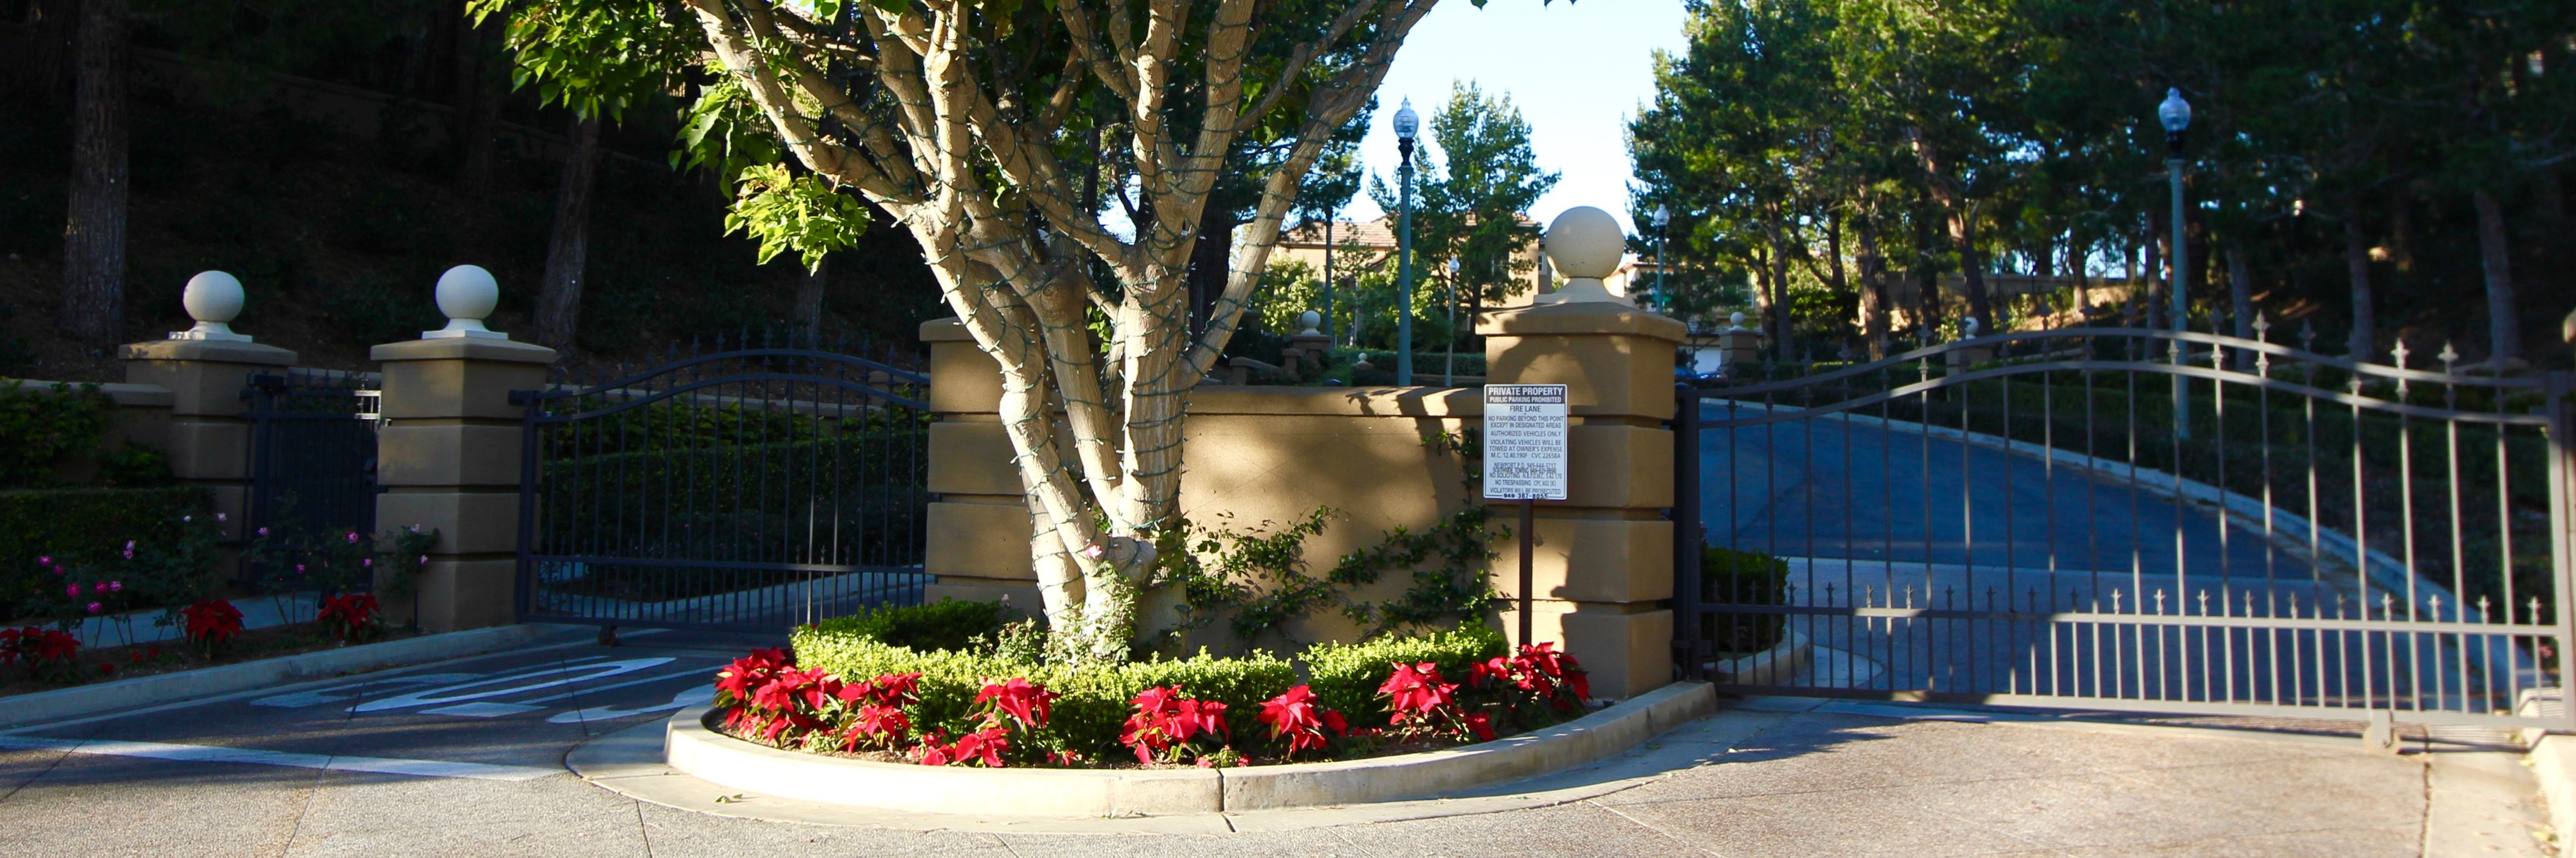 Sancerre is a gated home community in Newport Coast CA